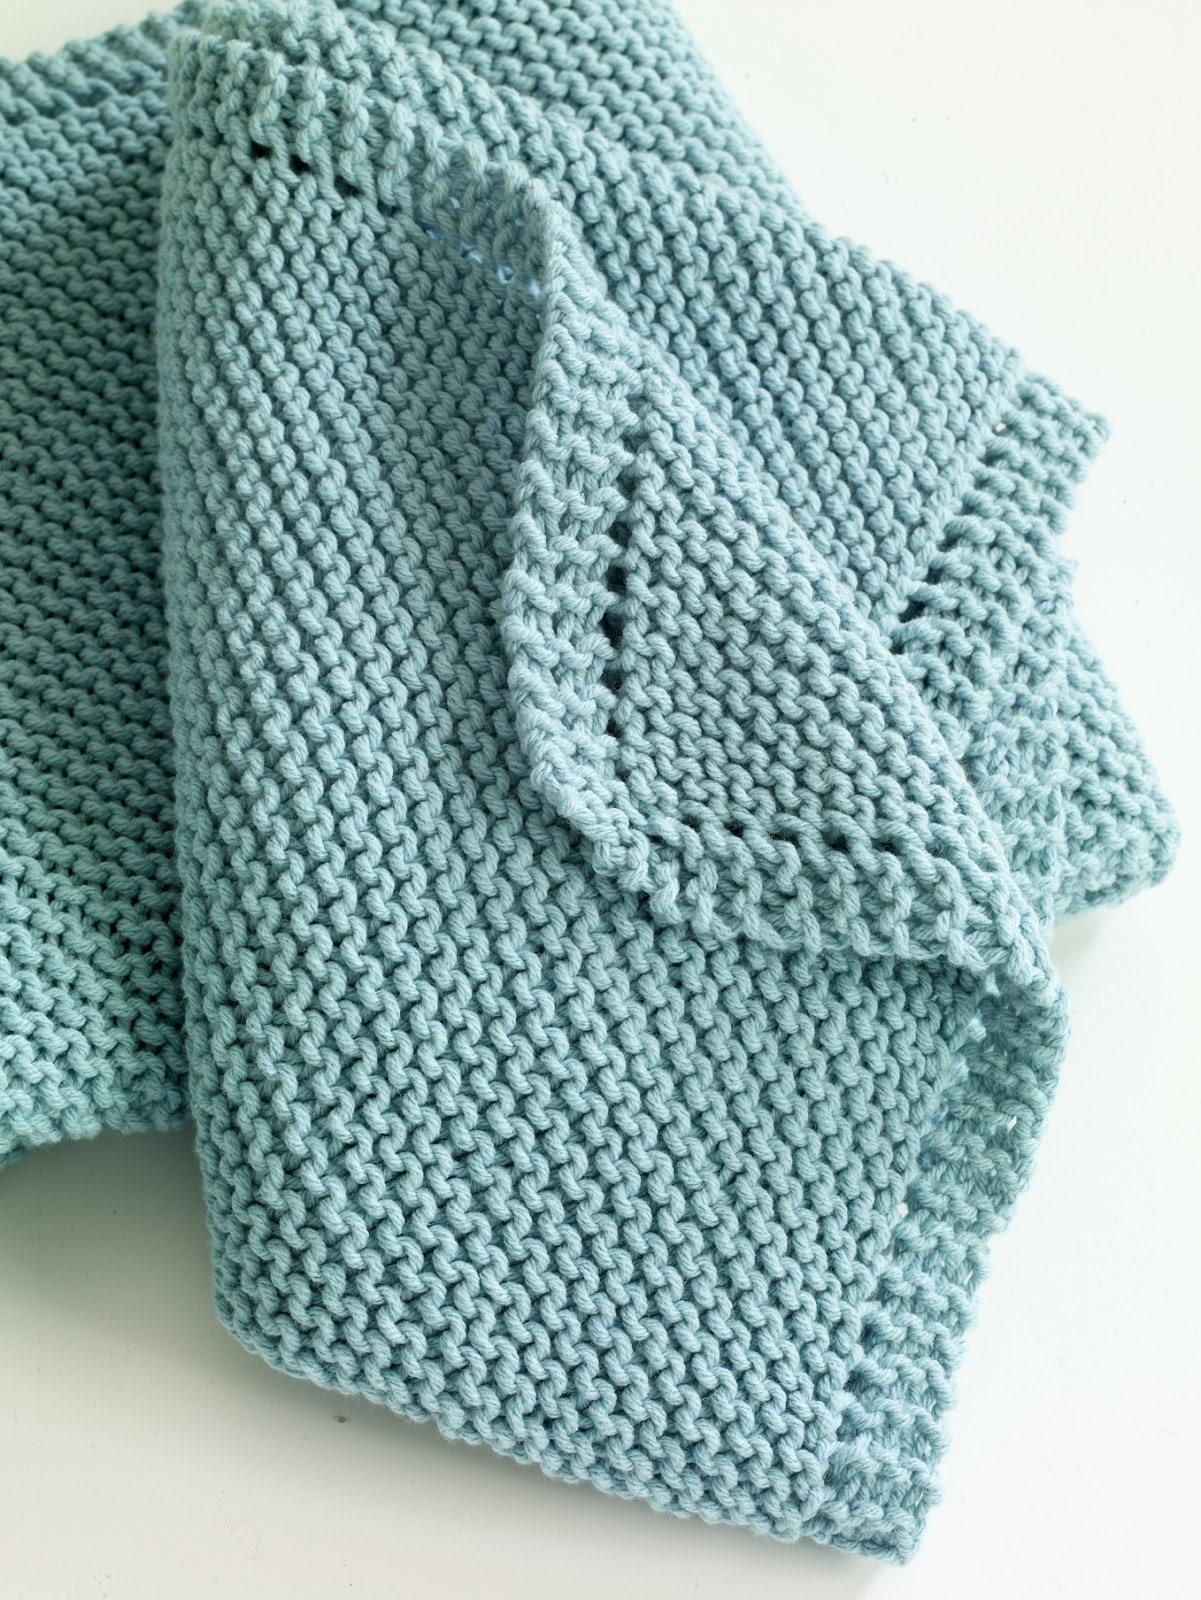 Baby Blanket Knitting Pattern Easy : Serenity Knits